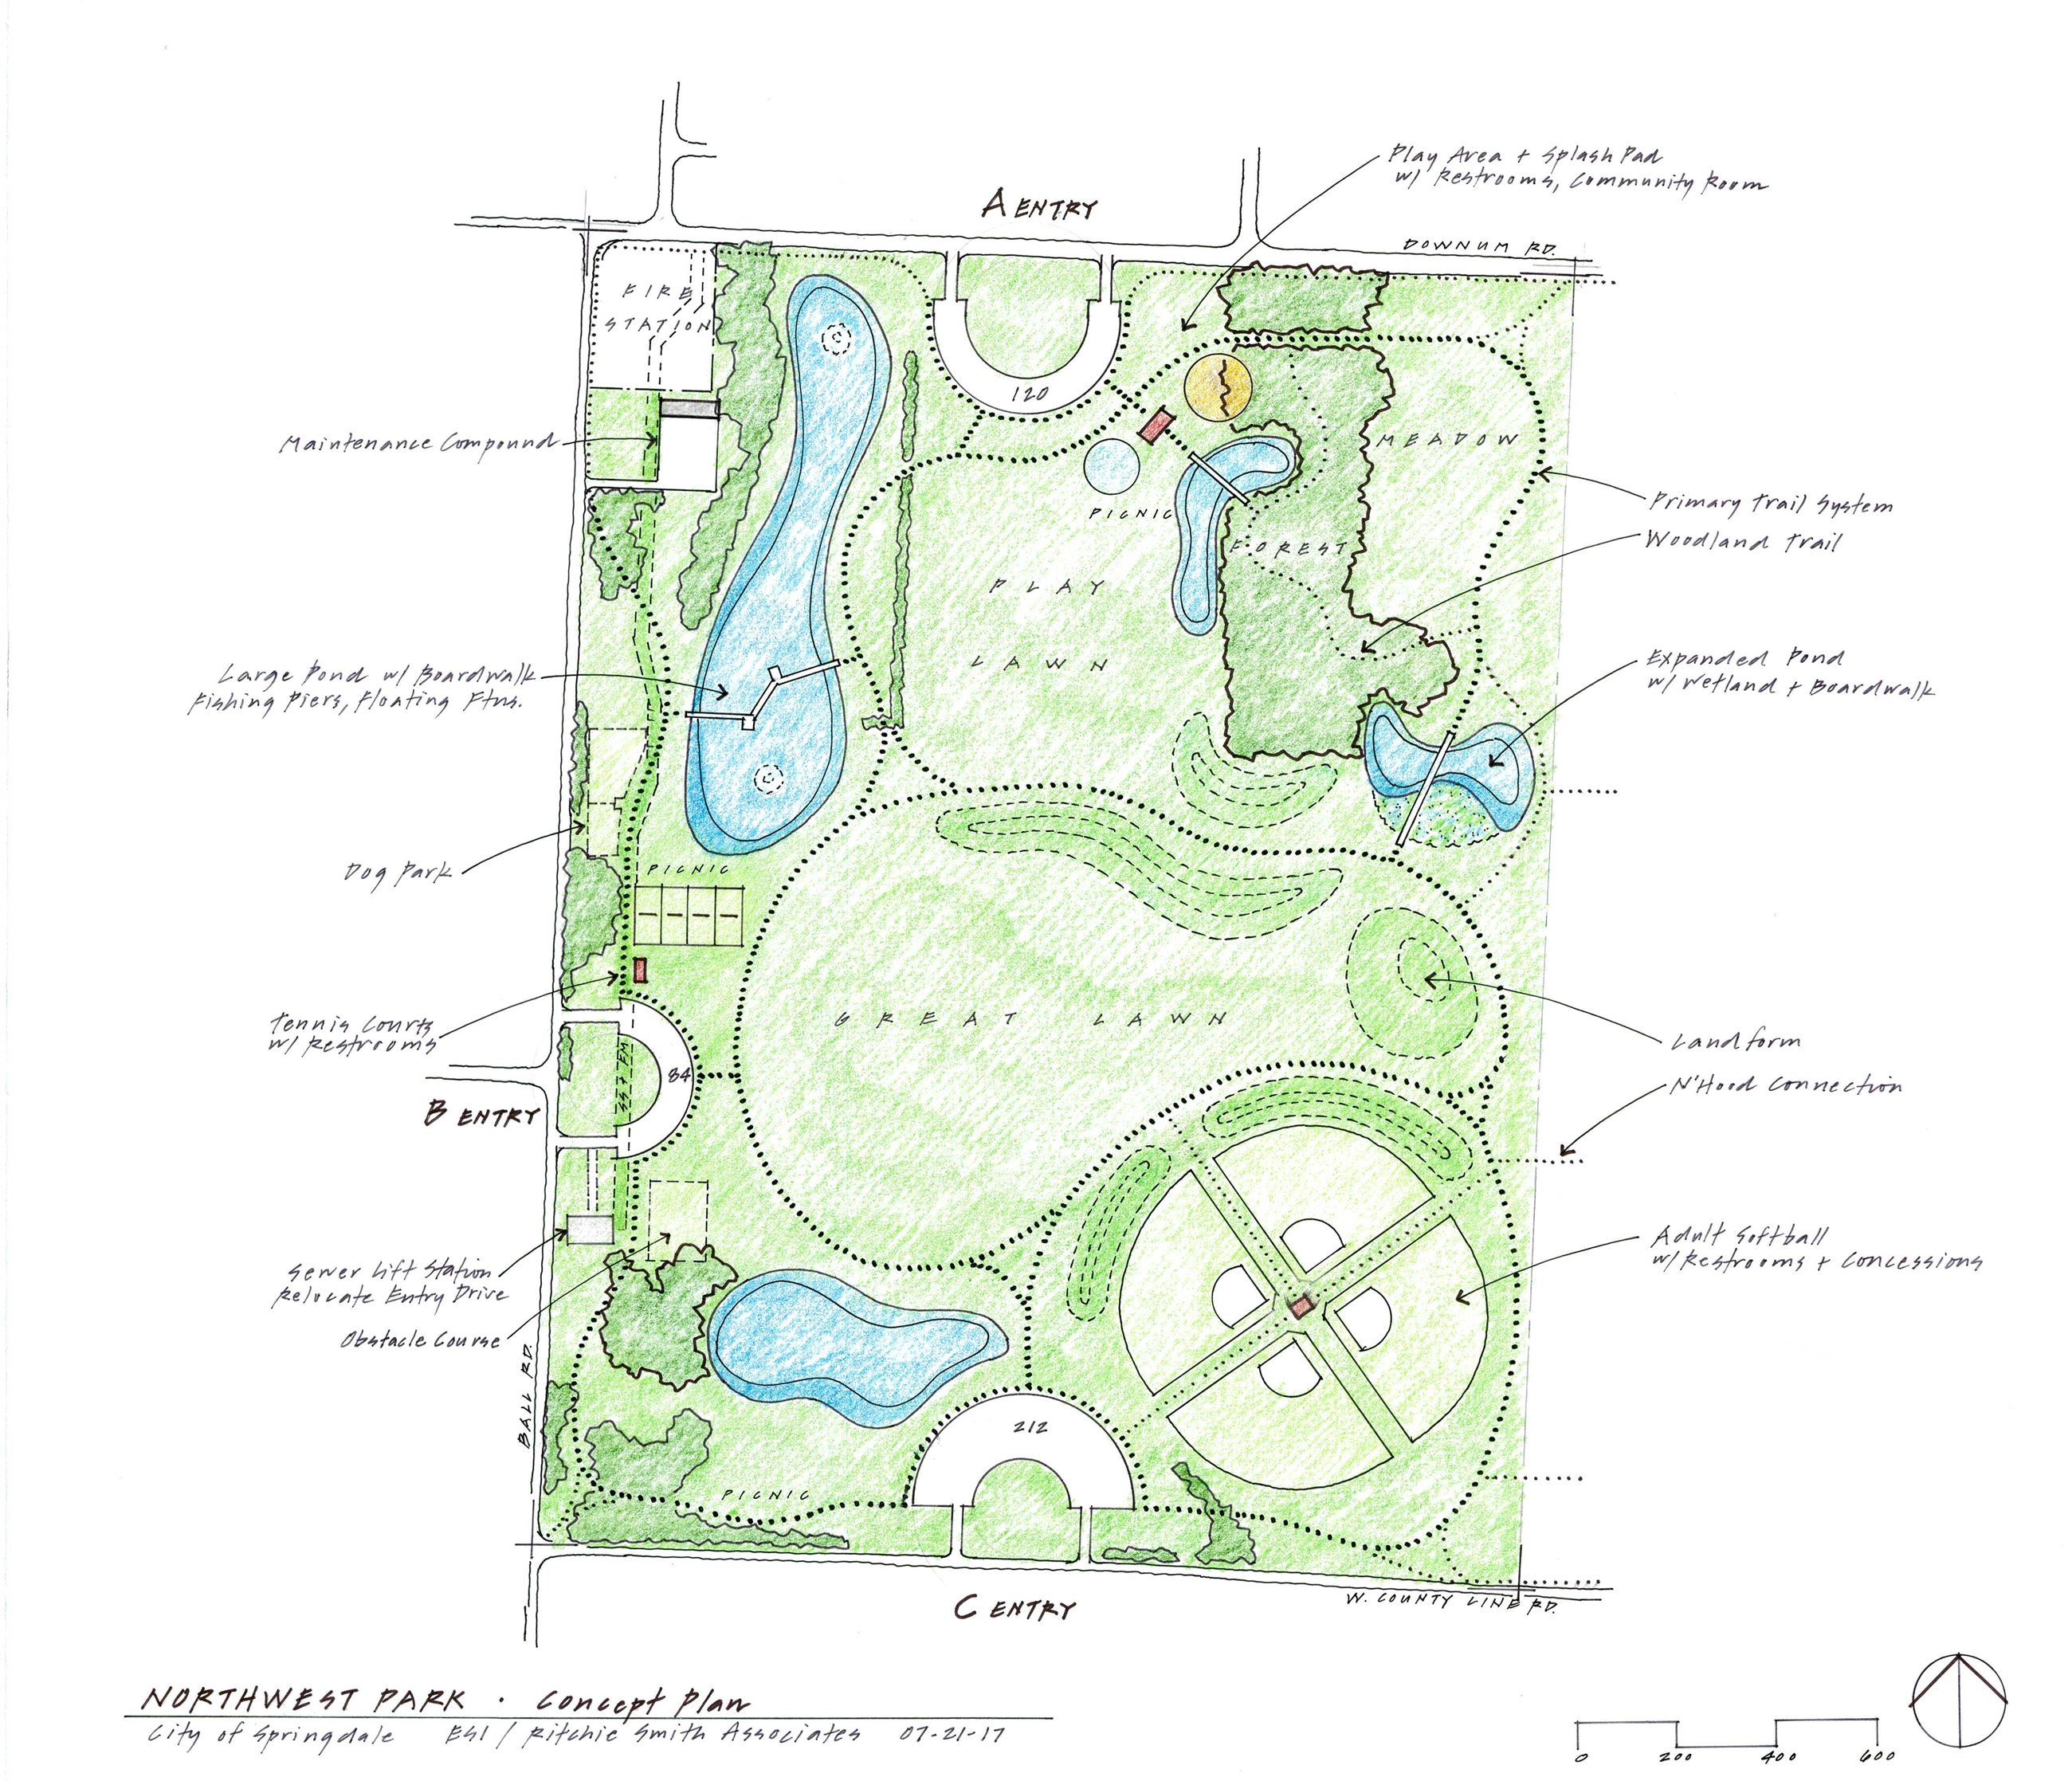 Northwest Park - concept plan 07.21.17